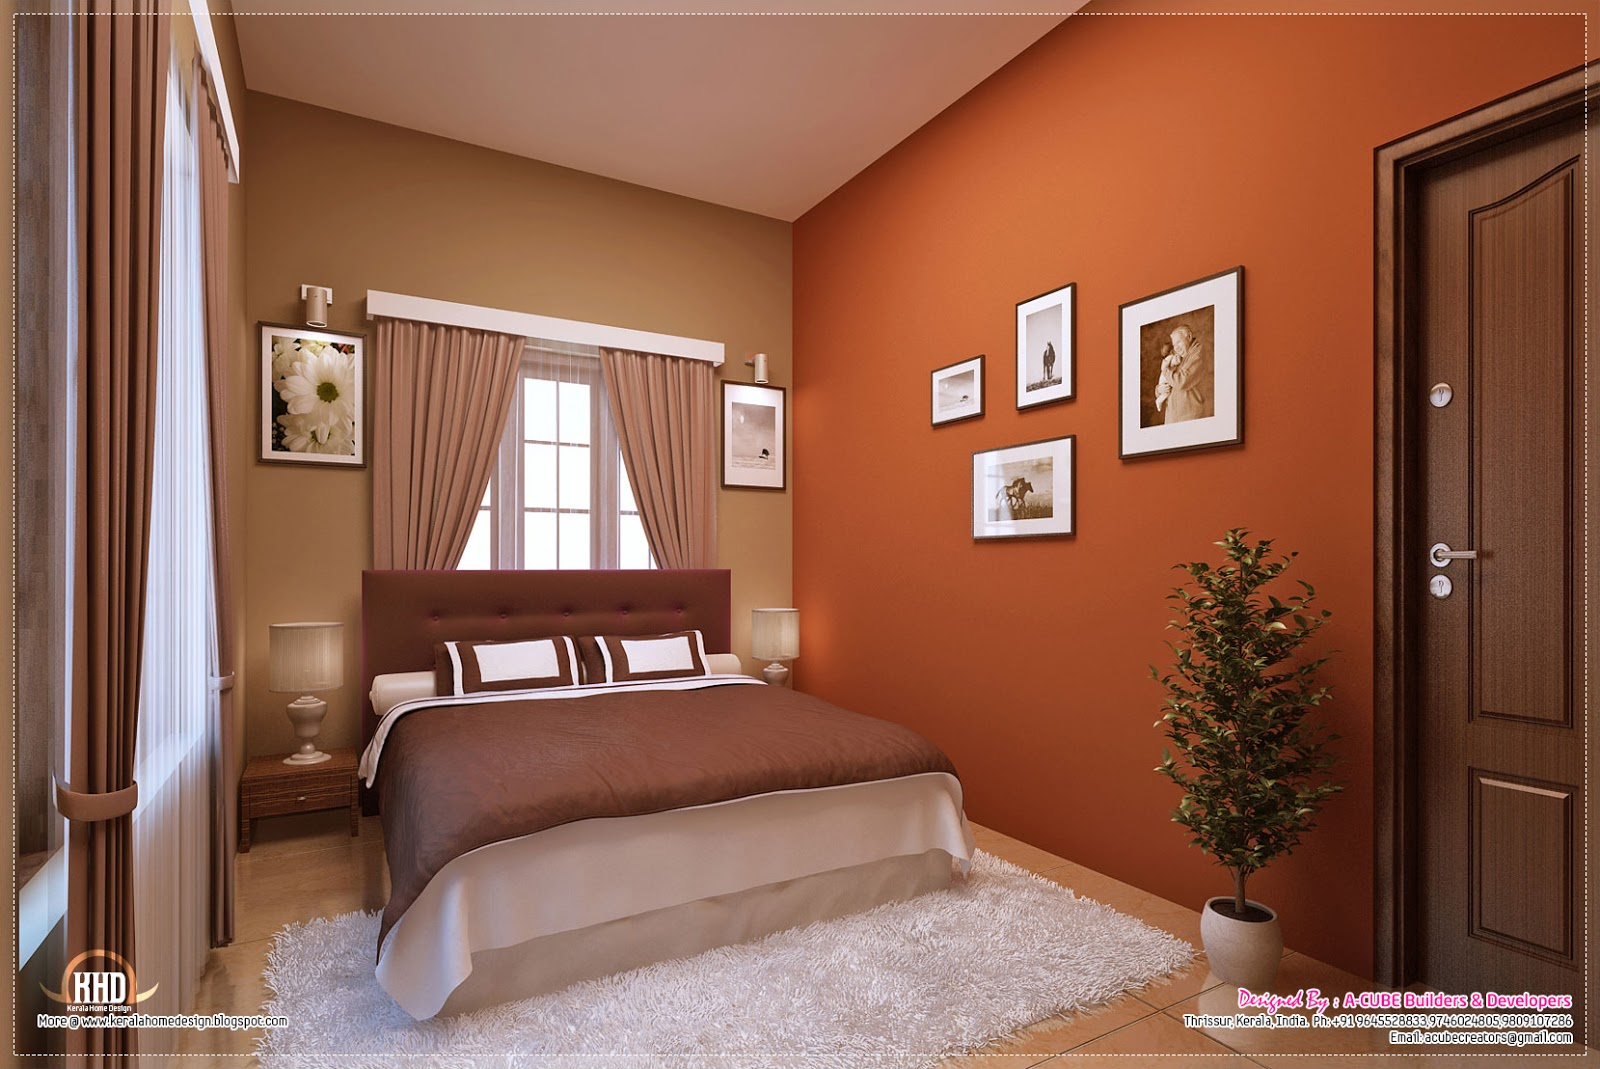 Awesome interior decoration ideas kerala home design and for Bedroom painting ideas india